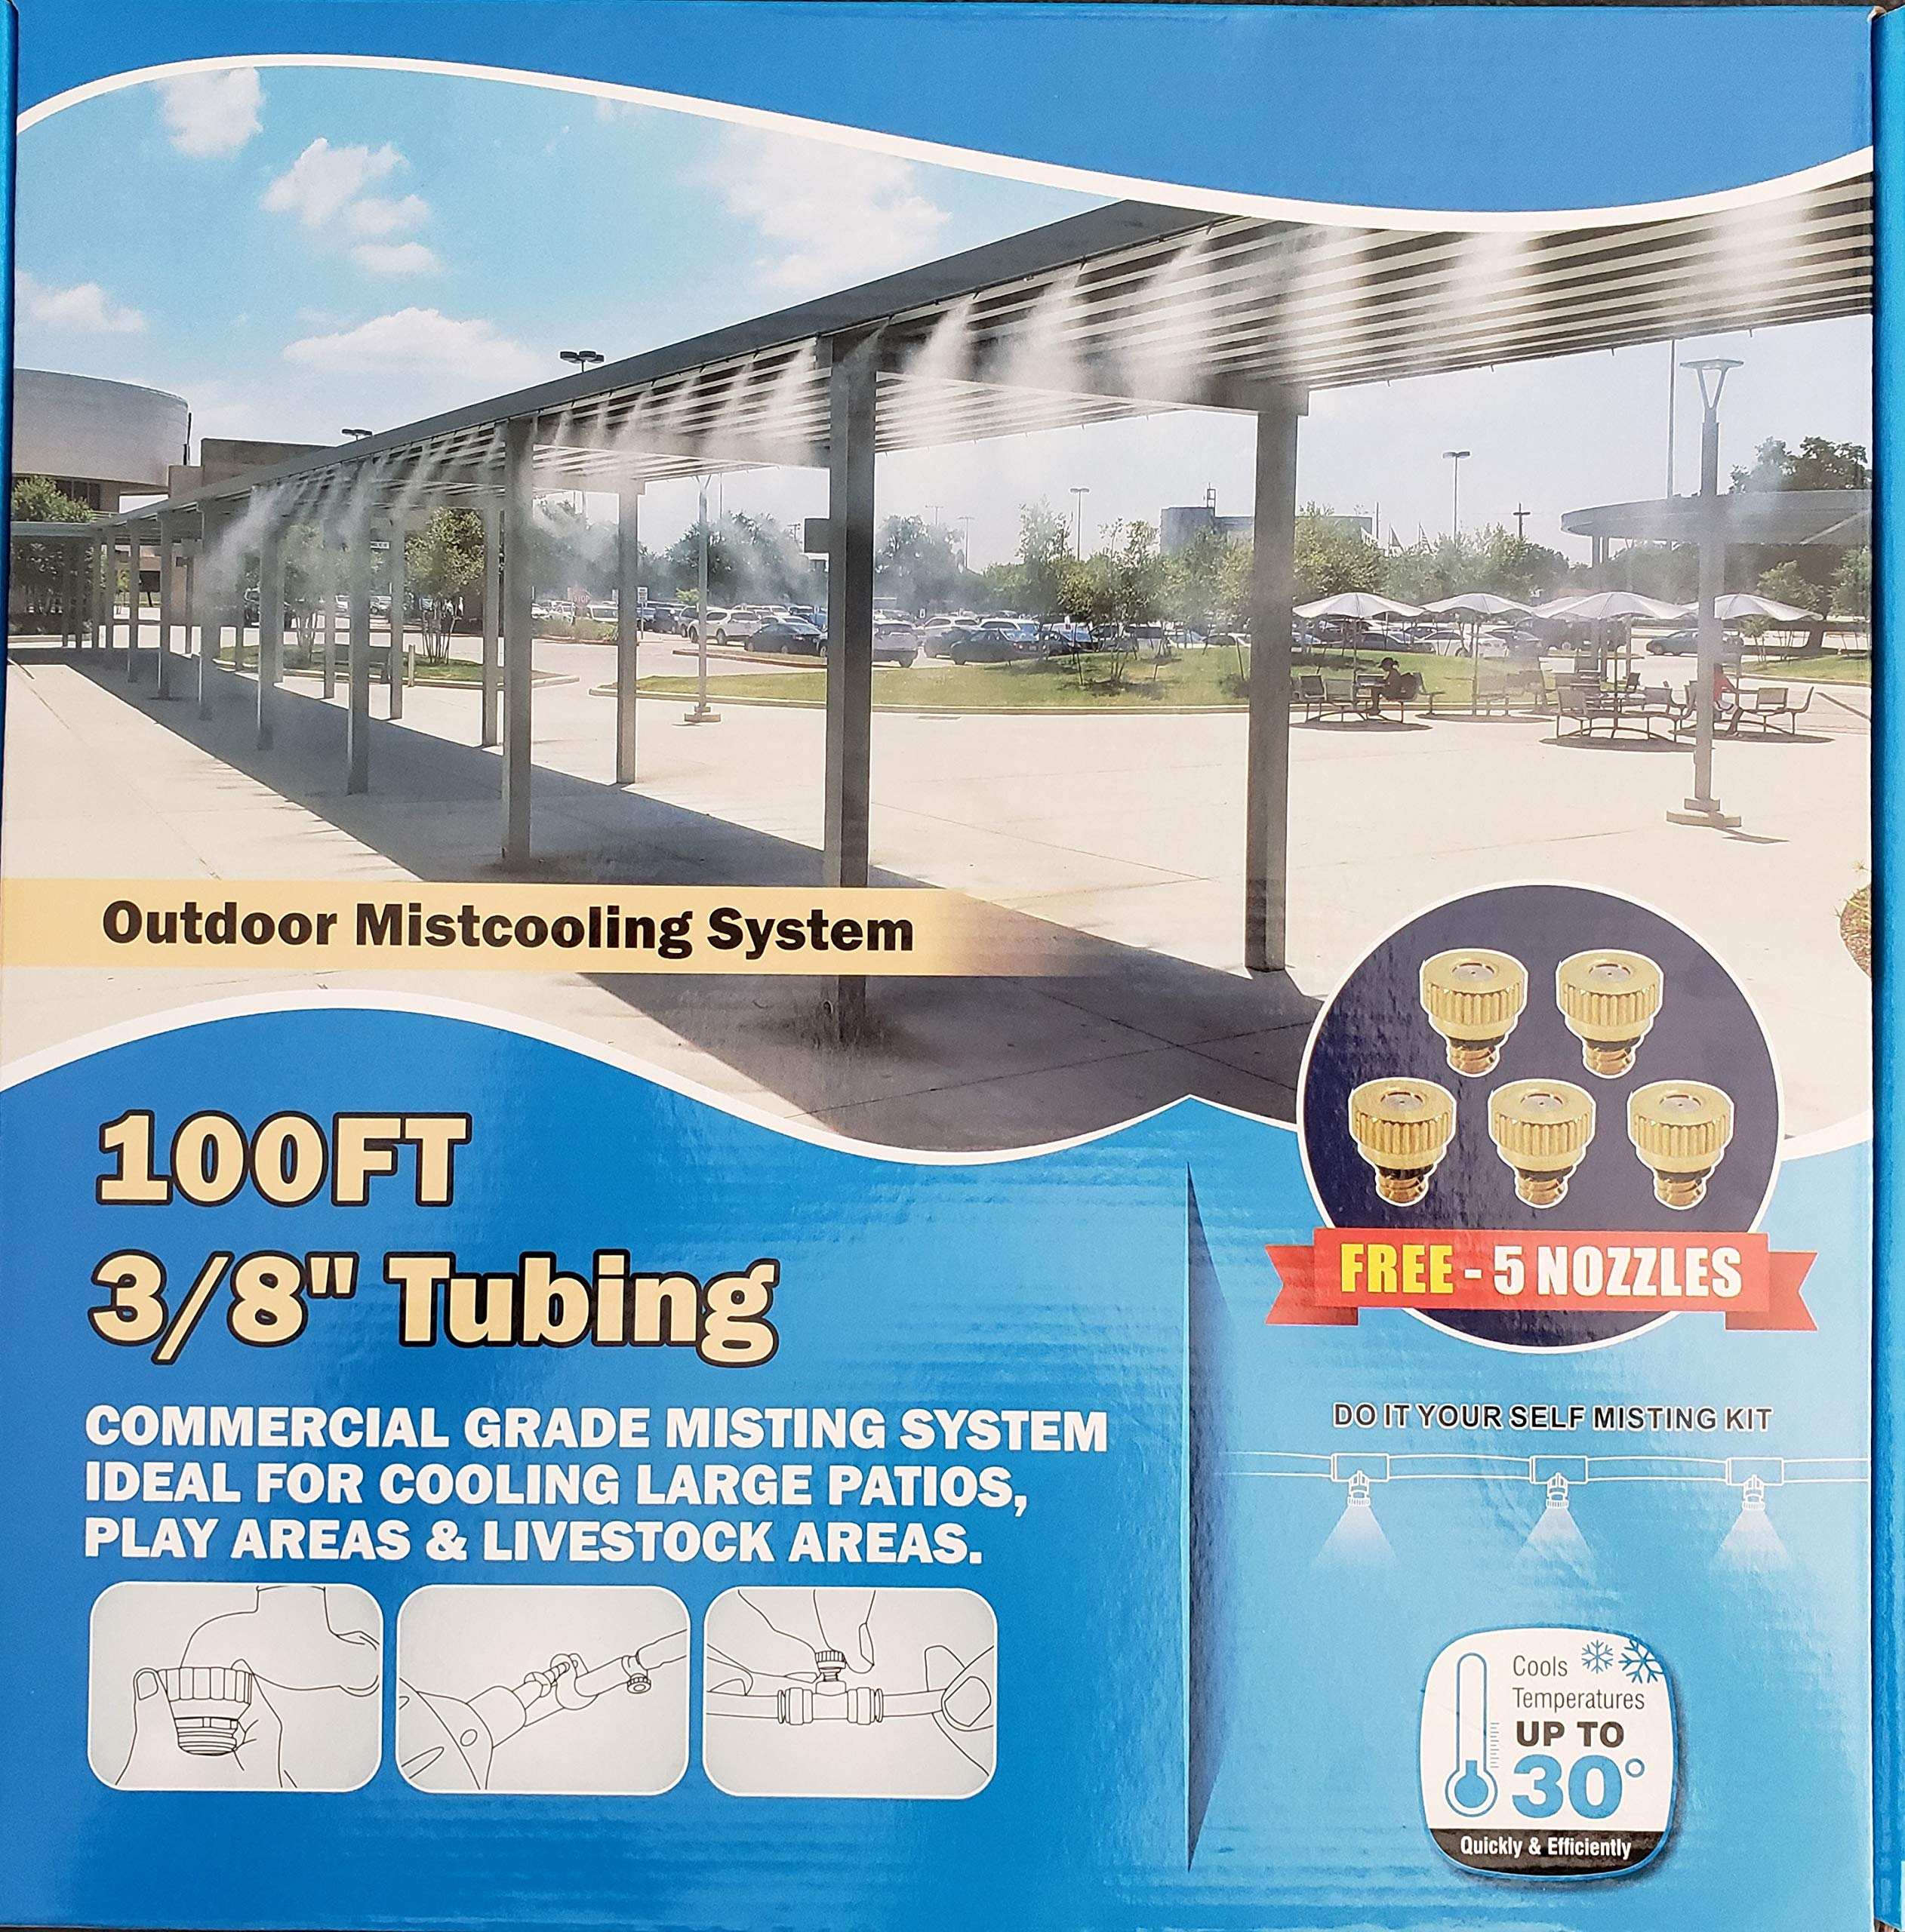 Hydrobreeze Outdoor Mistcooling System- 100 ft 3/8 Beige Tubing - 25 Misting Nozzles by Hydrobreeze